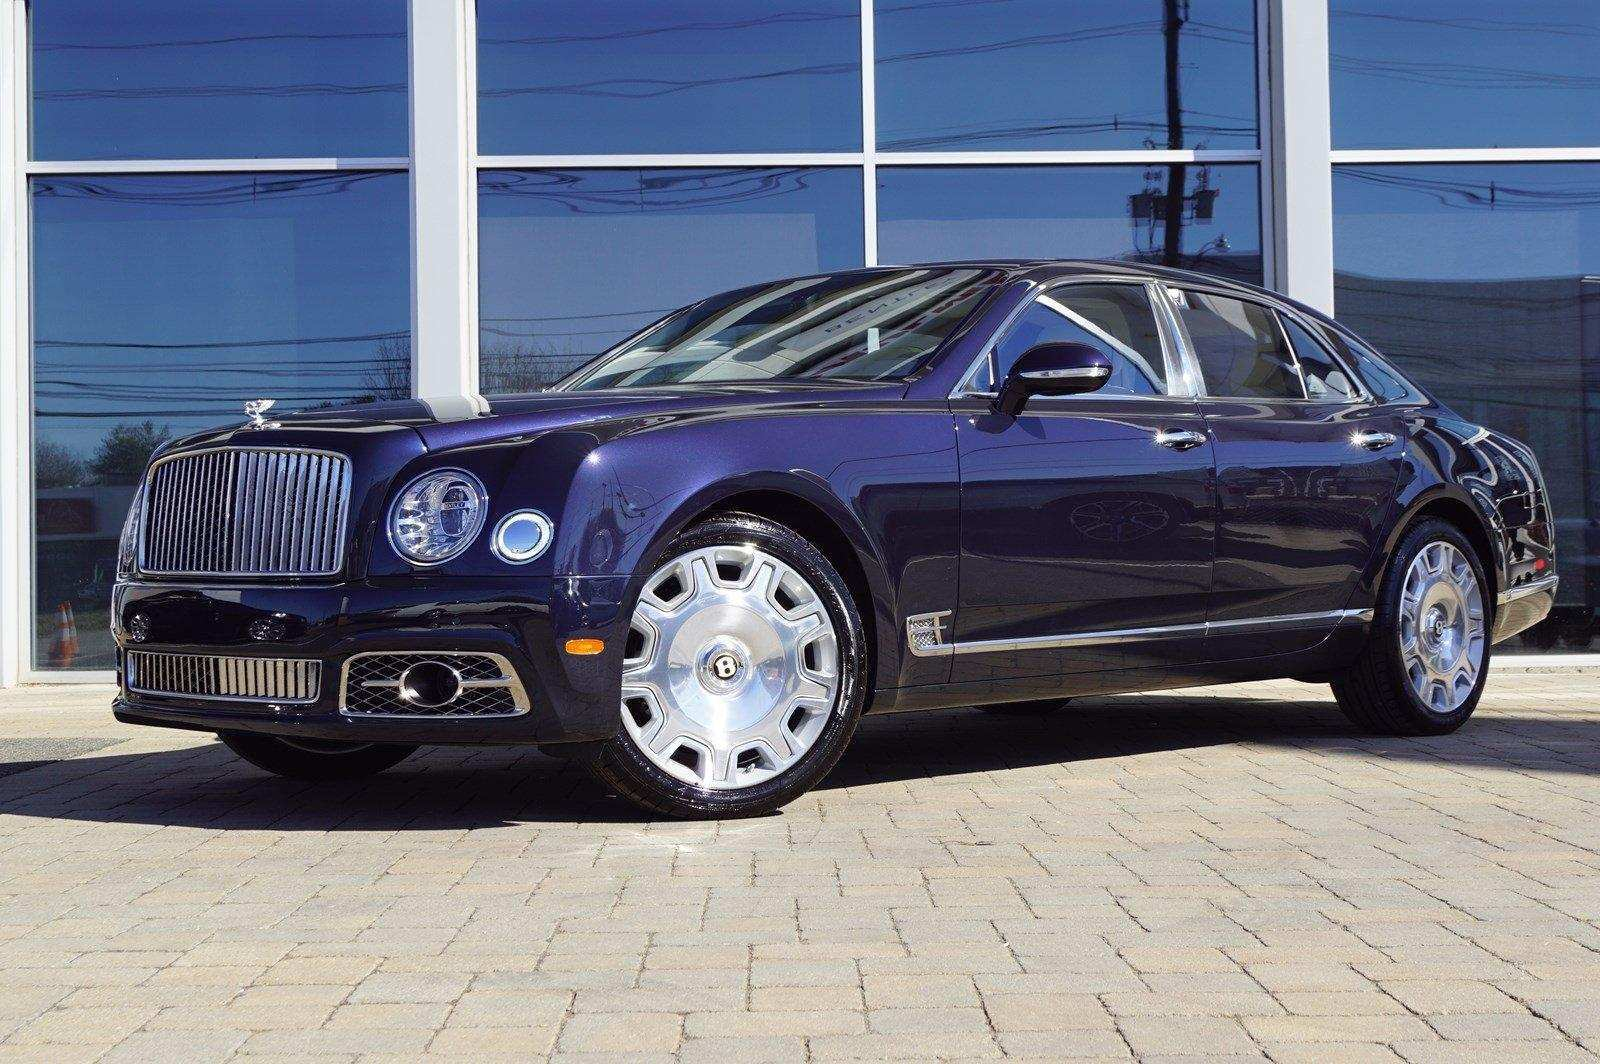 71 All New 2019 Bentley Mulsanne For Sale Redesign